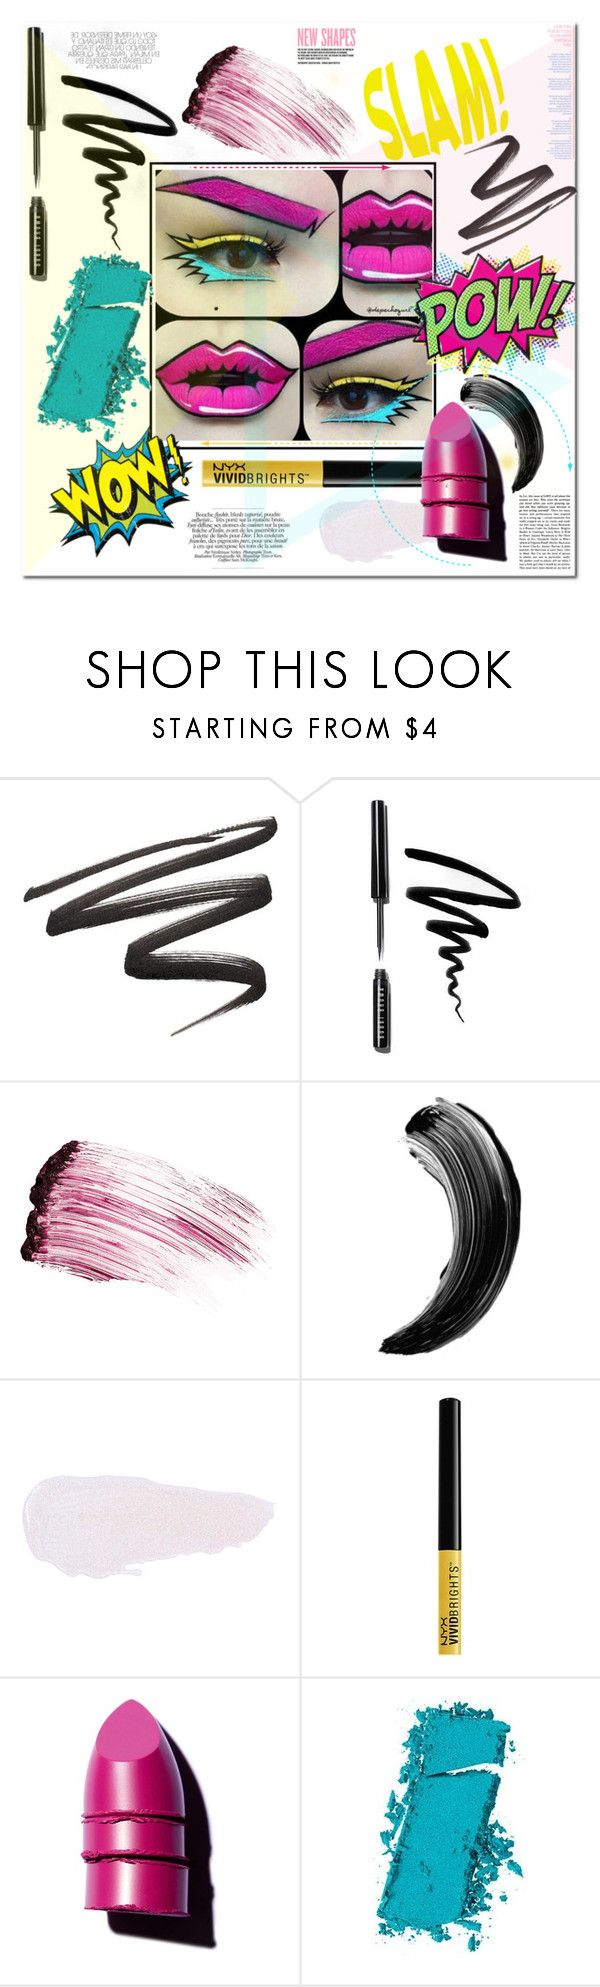 """""""Comic Book Makeup Fun"""" by esellevee ❤ liked on Polyvore featuring beauty, Bobbi Brown Cosmetics, Kevyn Aucoin, Anastasia Beverly Hills, NYX, Maybelline, Retrò and Charli"""